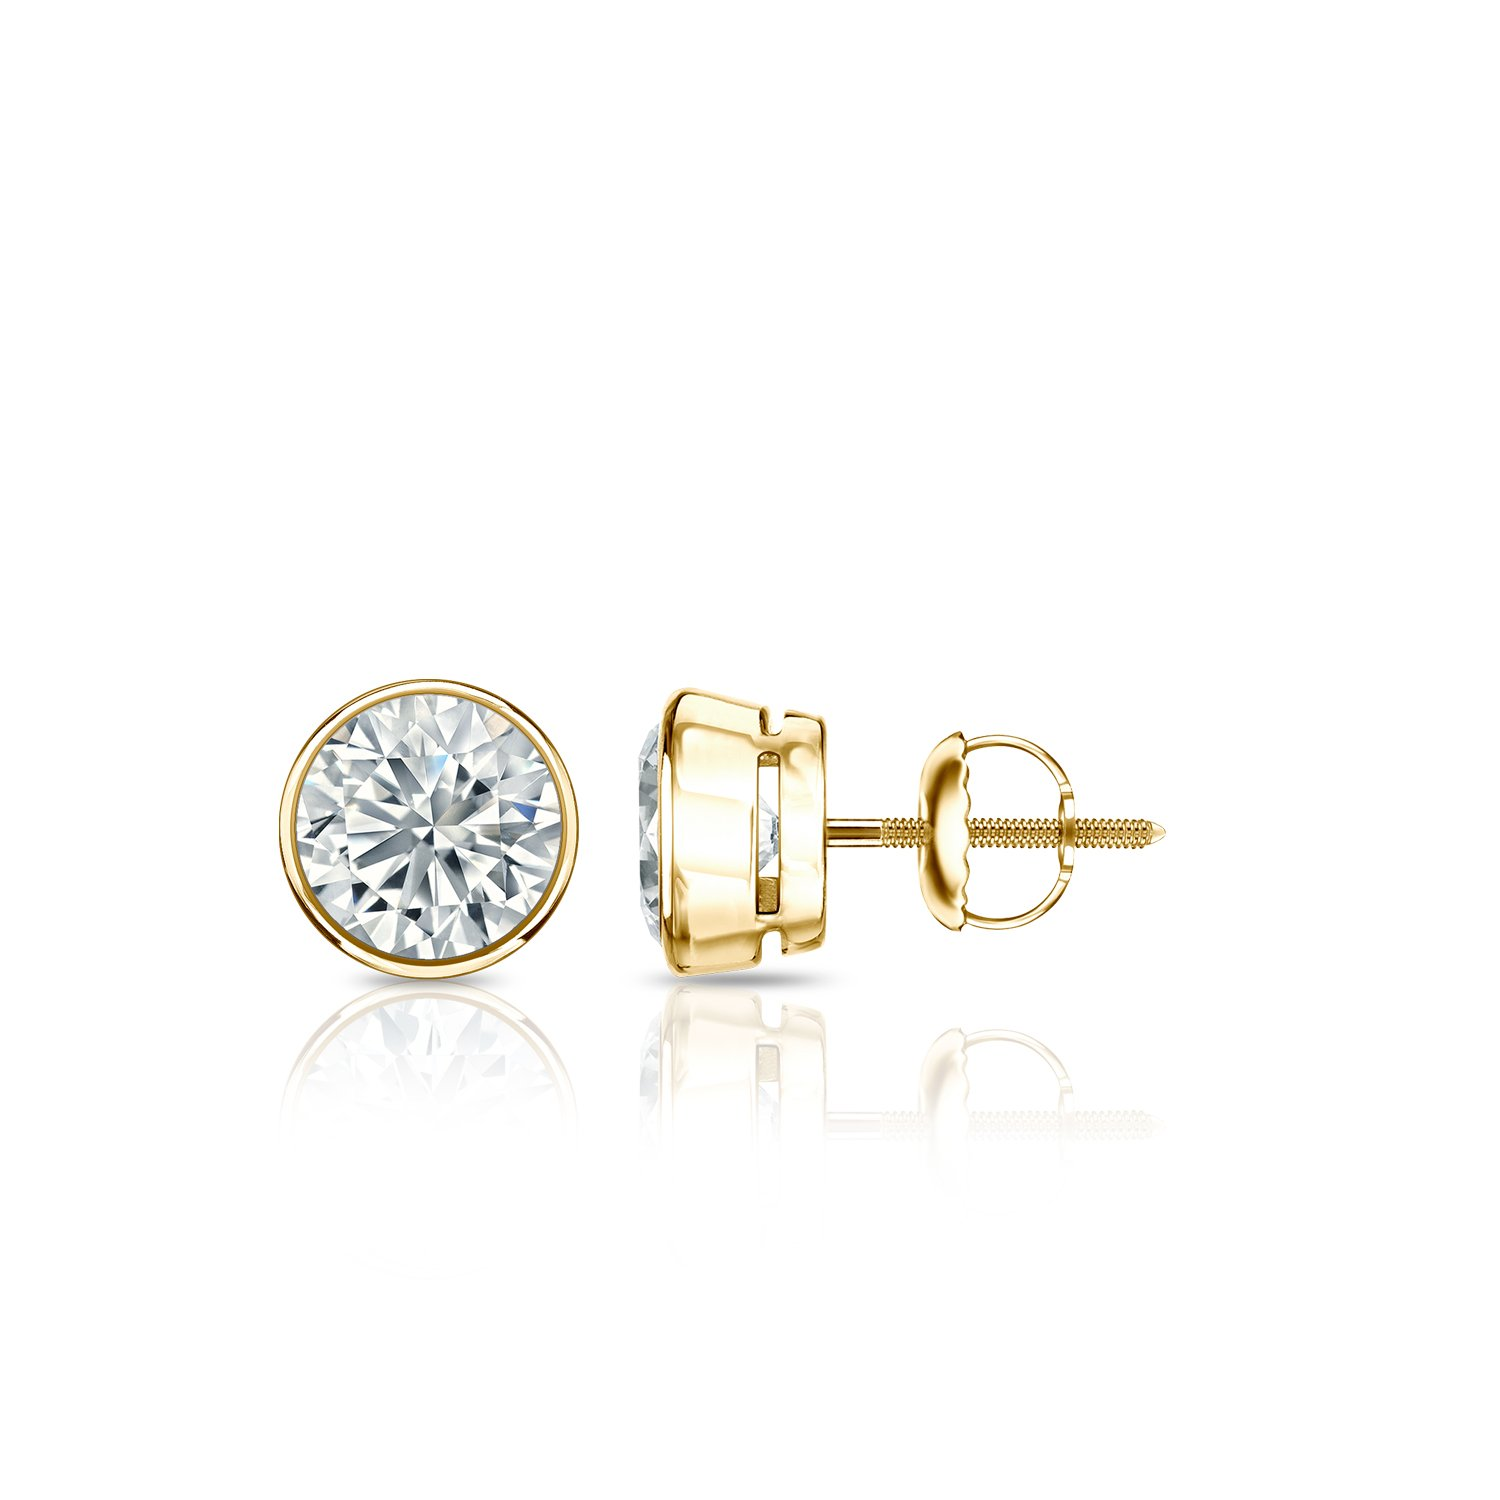 14k Gold Round Diamond Stud Earrings (1/4 to 2cttw, G-H, SI1-SI2) Bezel set with Screw-backs Diamond Wish